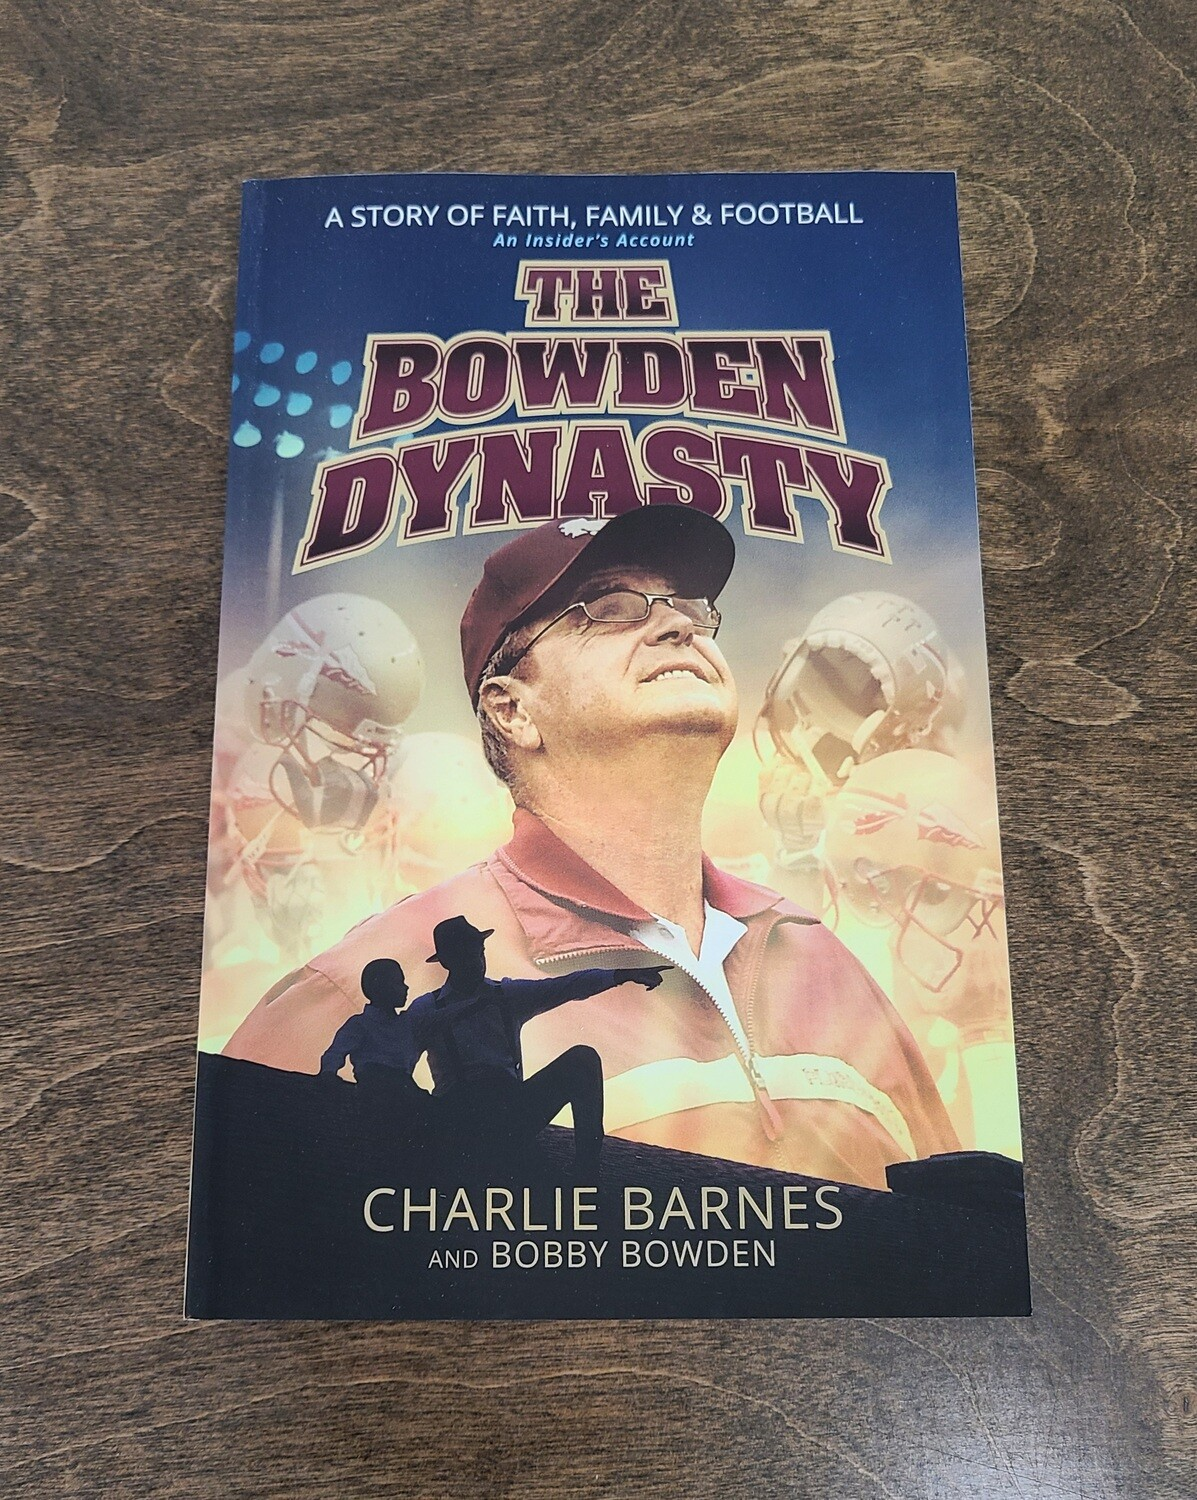 The Bowden Dynasty: A Story of Faith, Family, and Football by Charlie Barnes and Bobby Bowden